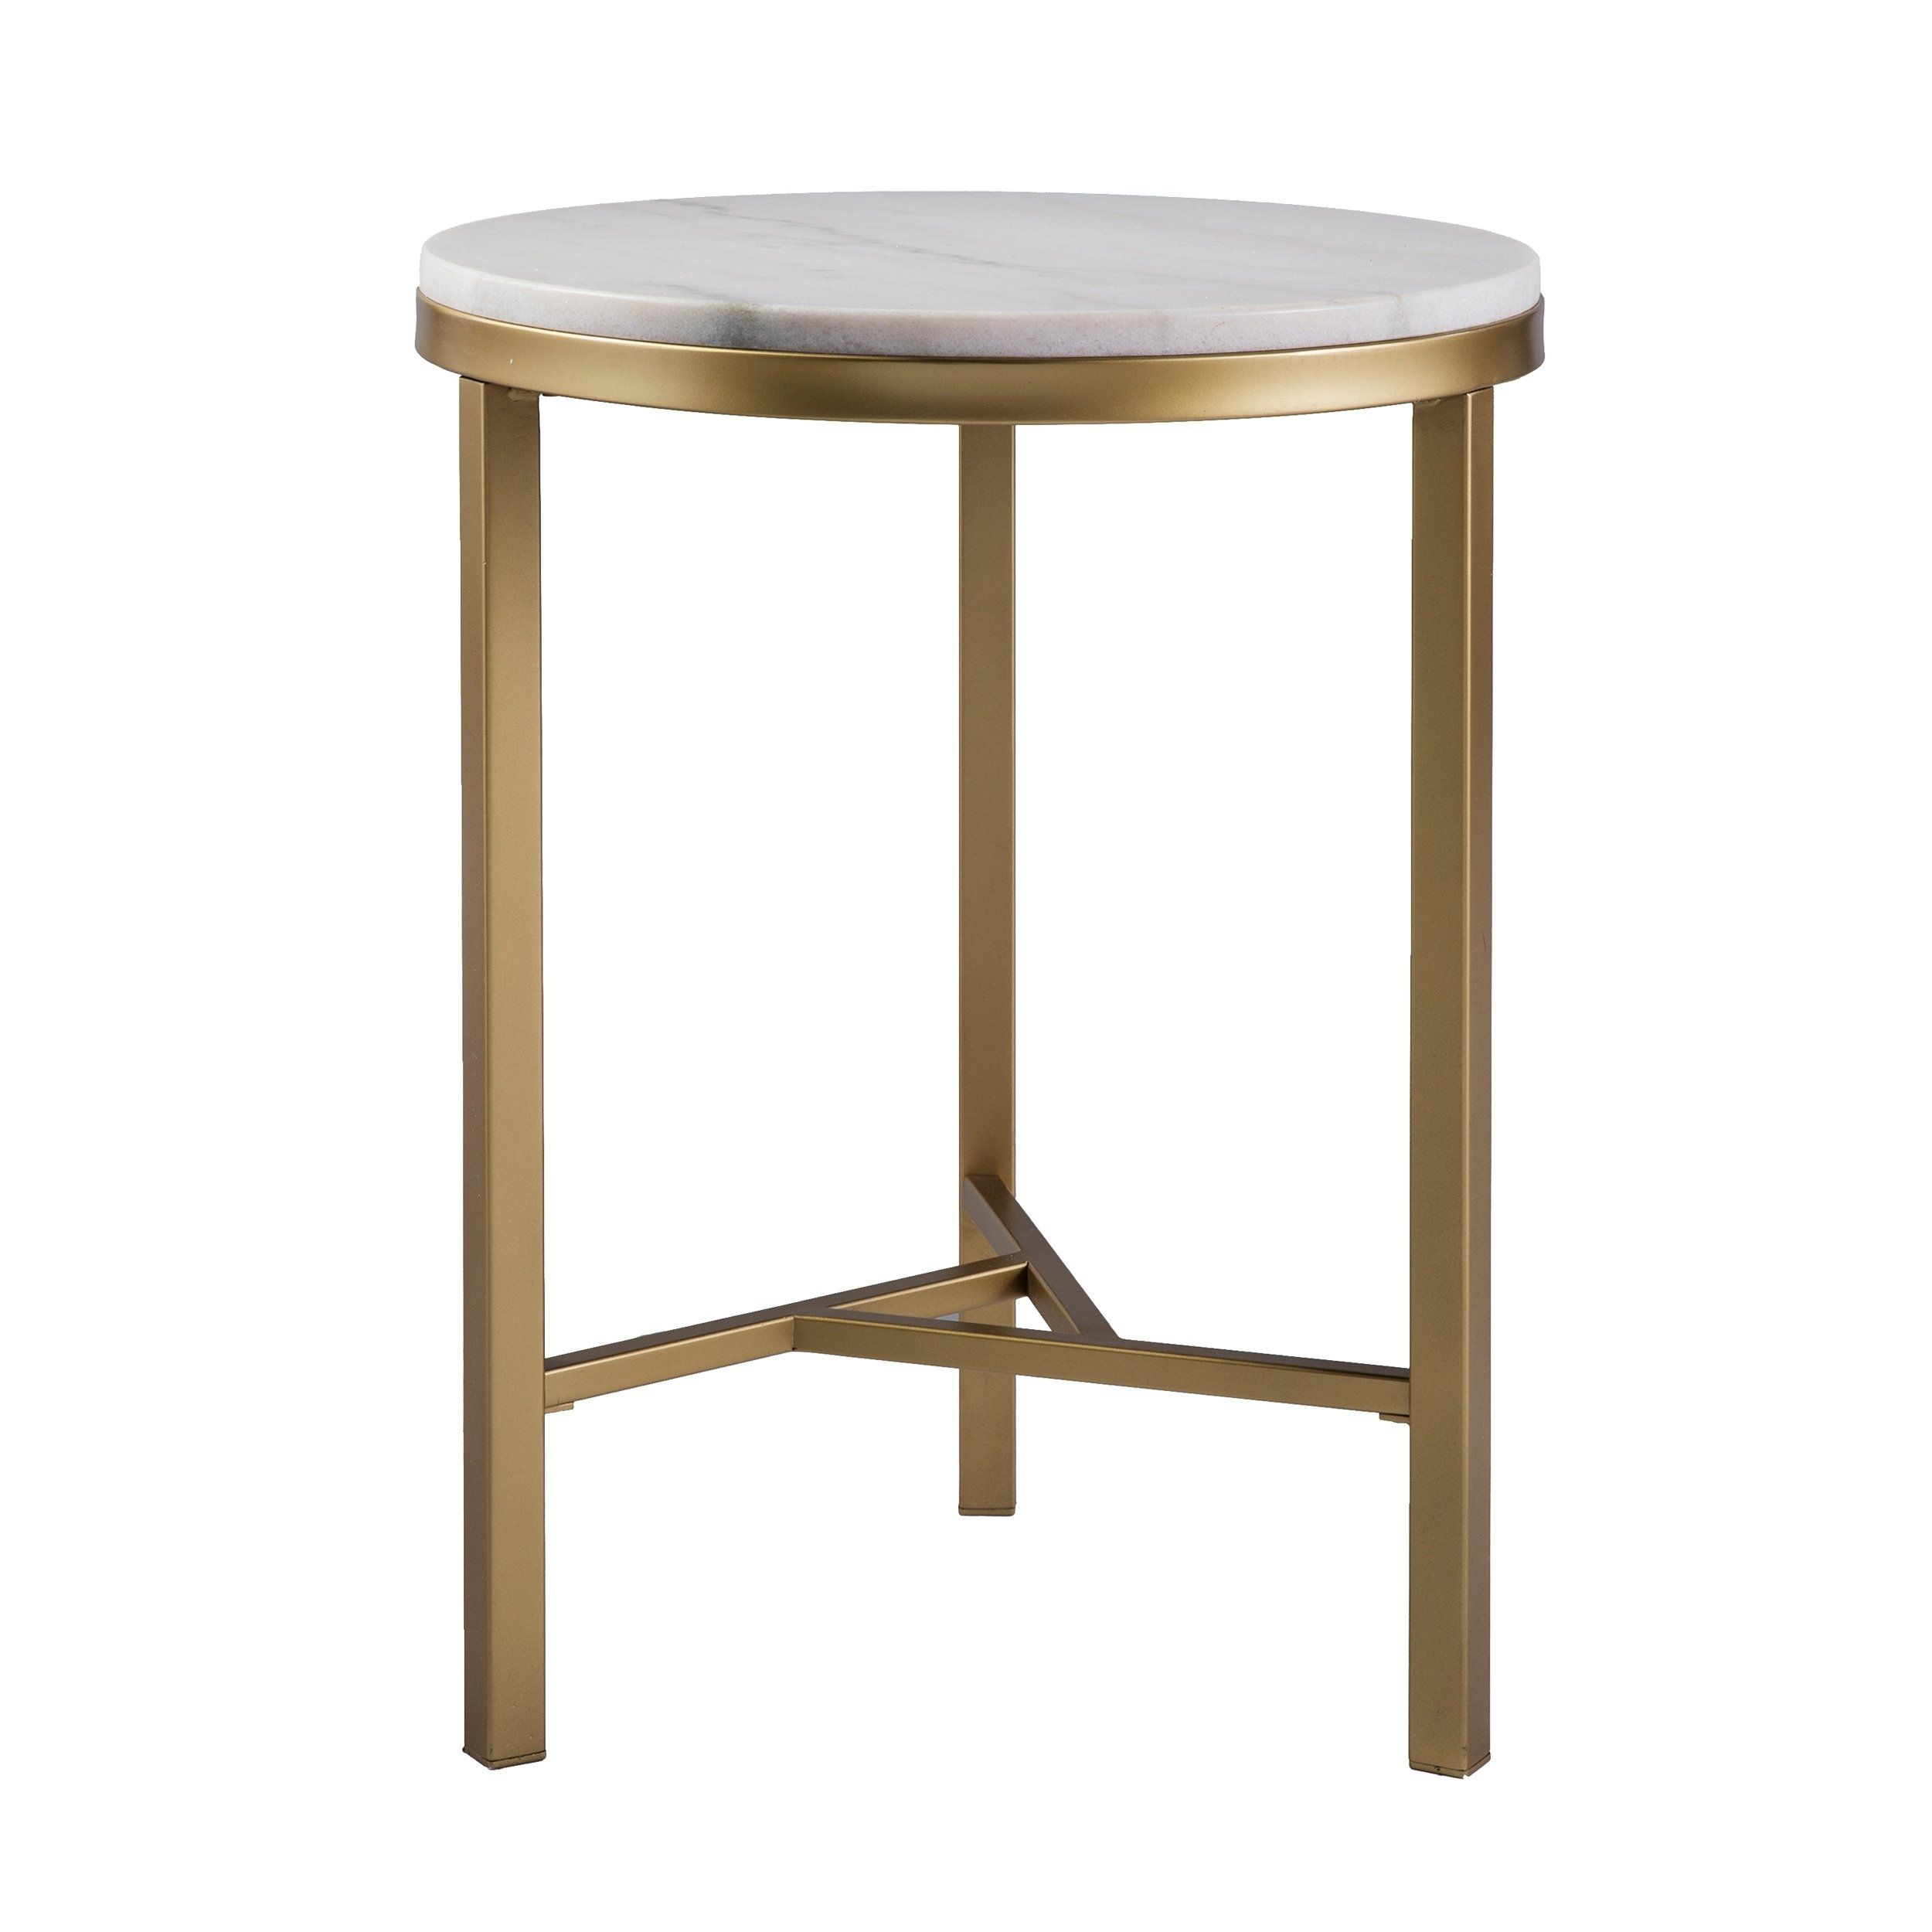 Overstock Com Online Shopping Bedding Furniture Electronics Jewelry Clothing More In 2021 Marble Side Tables Round Marble Table Side Table [ 2500 x 2500 Pixel ]